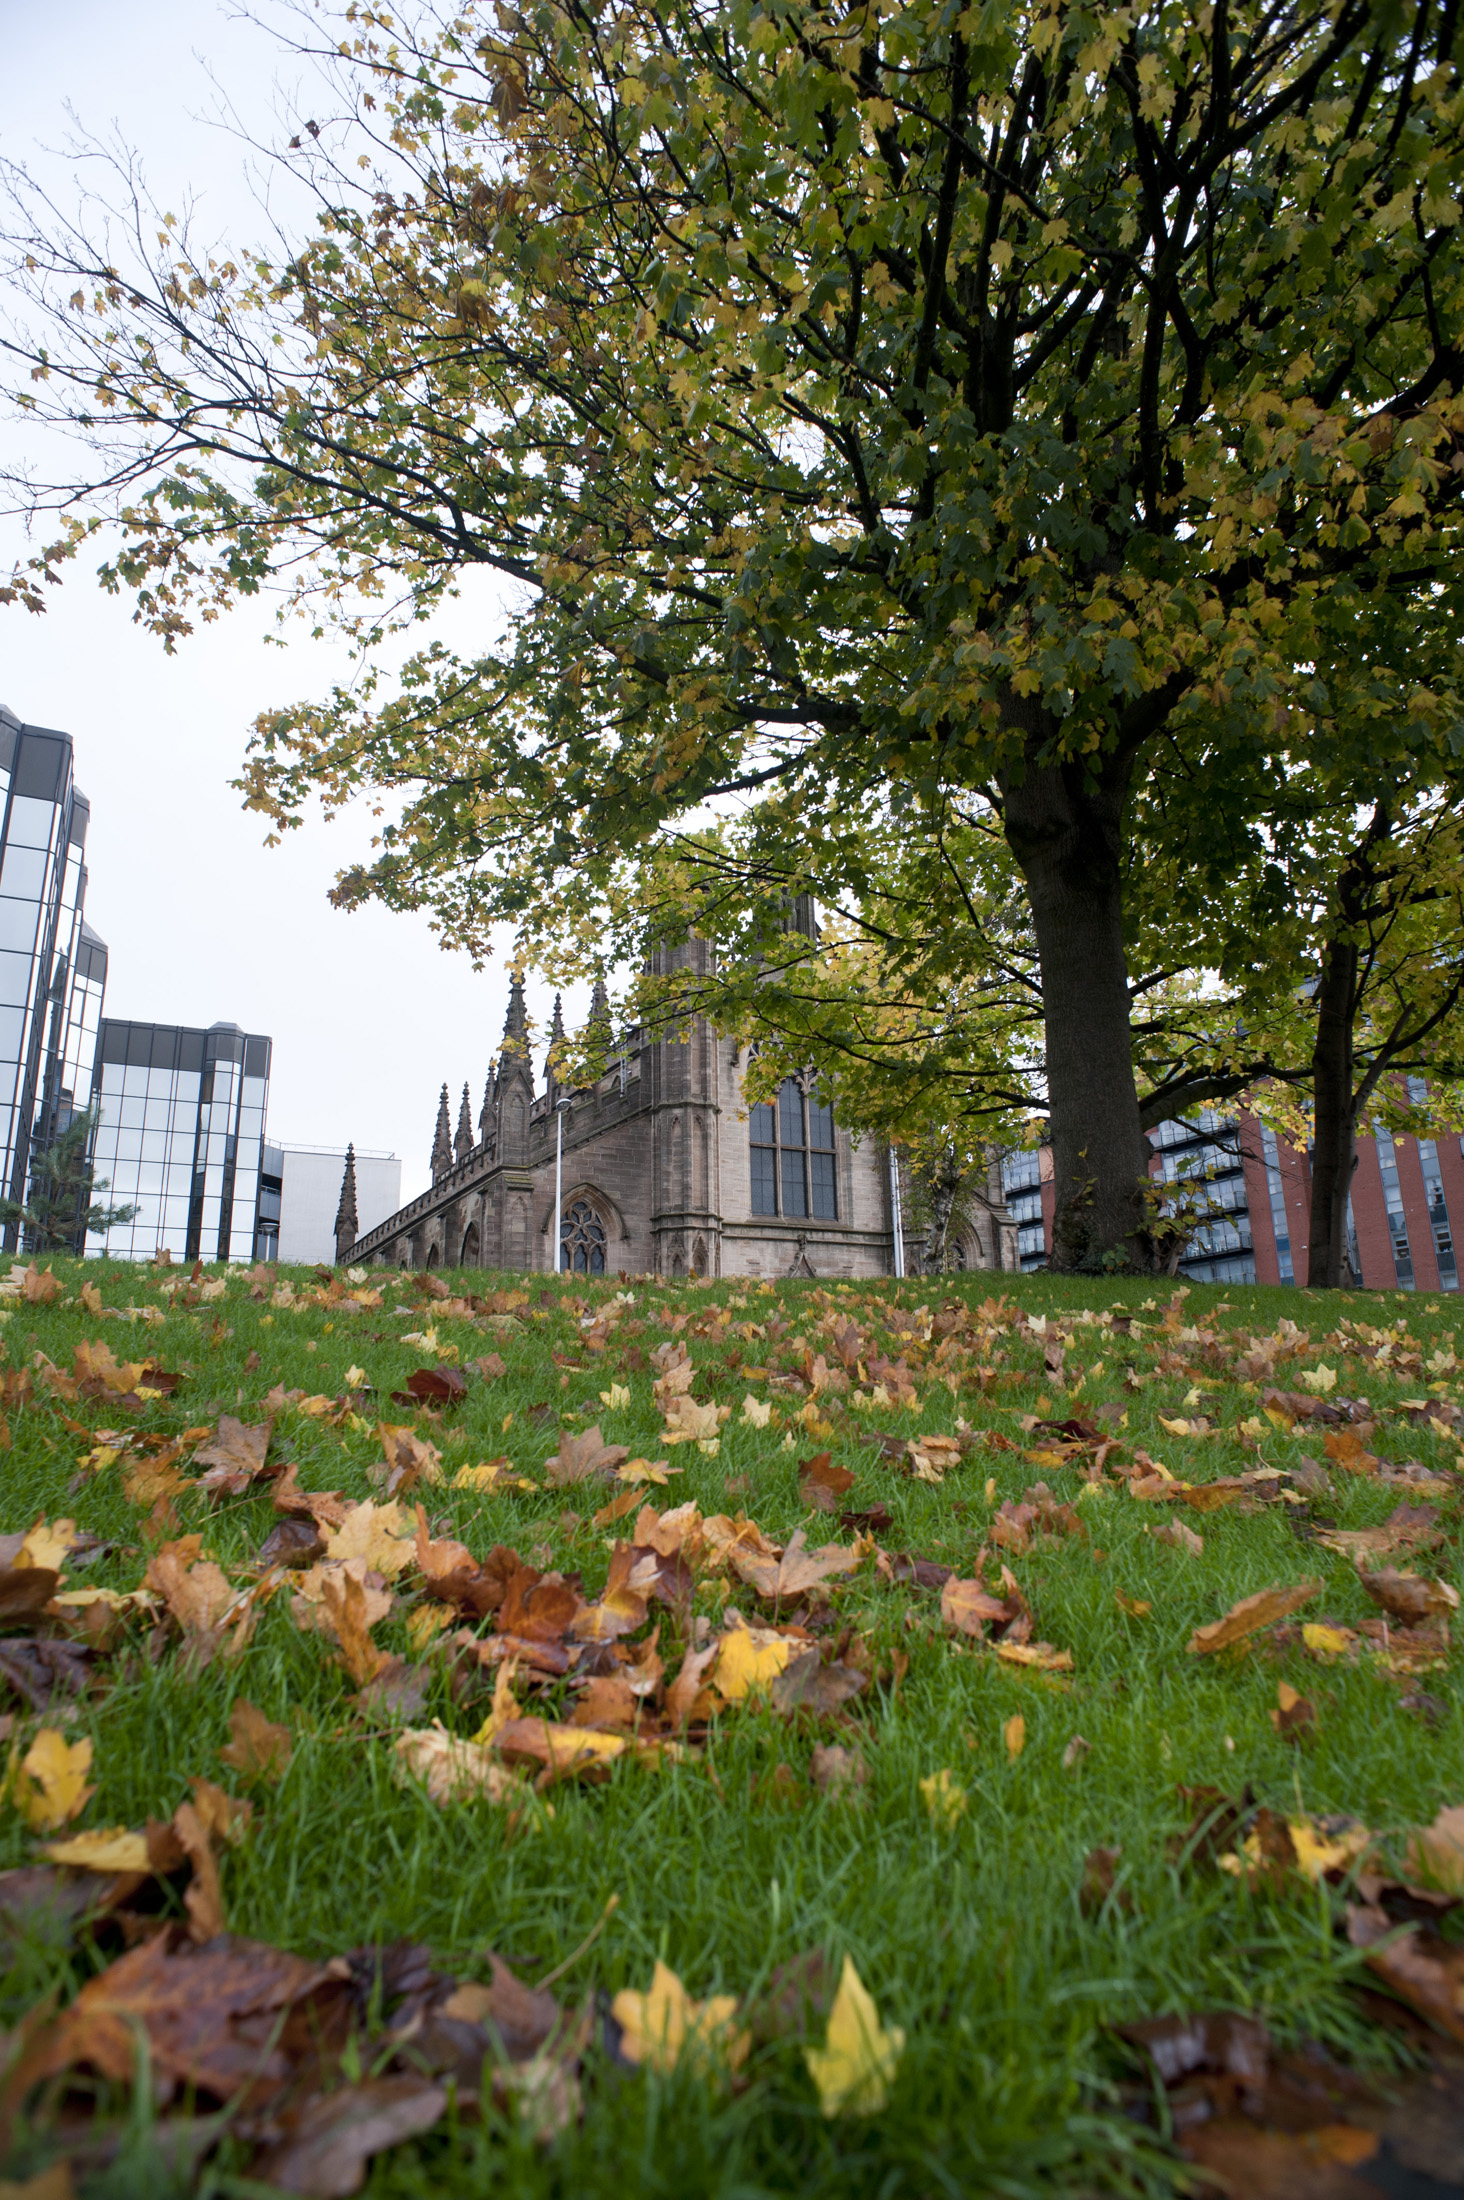 View across a green lawn scattered with autumn leaves of St Andrews Cathedral in Glasgow on the skyline